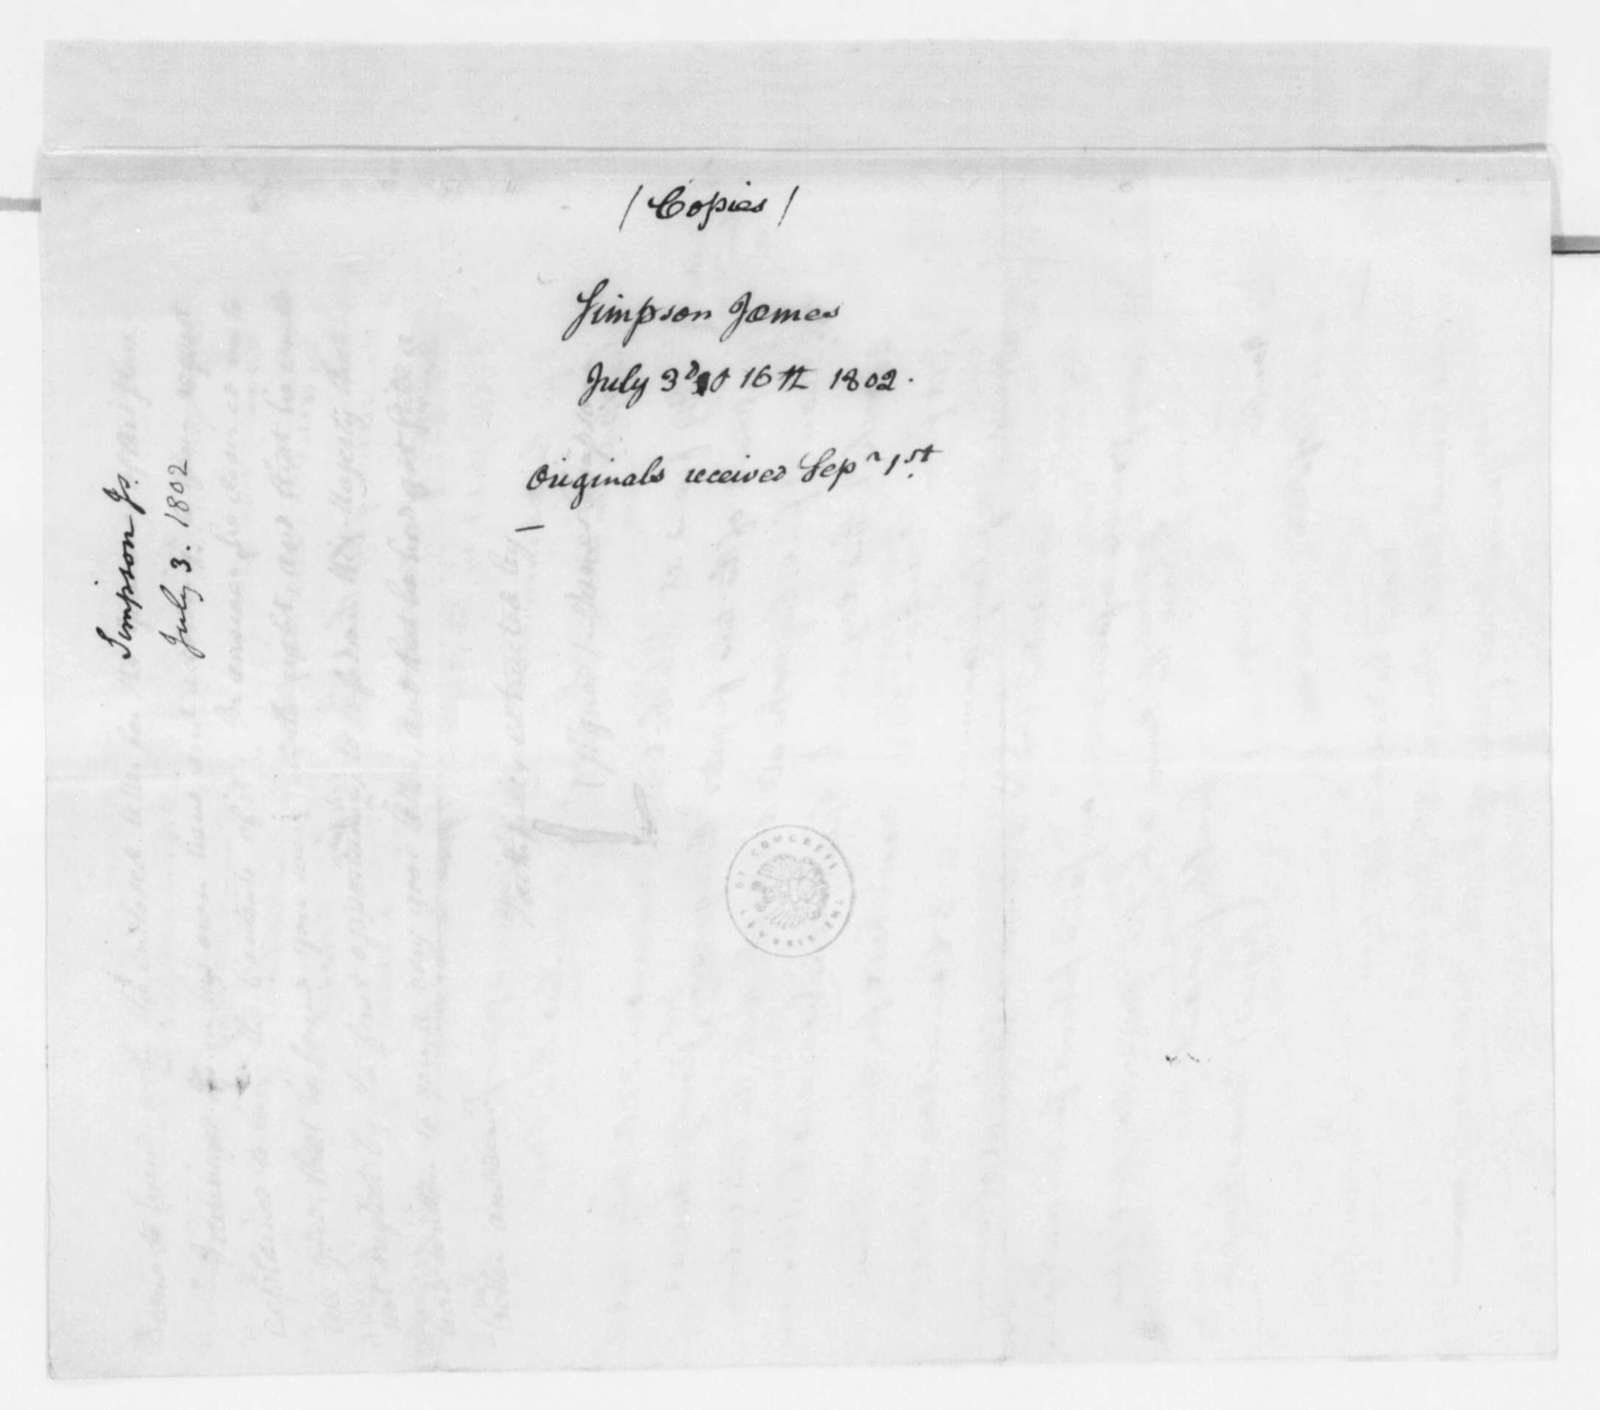 James Simpson to James Madison, July 3, 1802. Includes copies of James Simpson to Haji Alcayde Abde-Rhaman Hashash, July 5, 1802 and James Simpson to James Madison, July 16, 1802, No. 45 and extract from Danish consul at Tangier, July 9th, 1802.